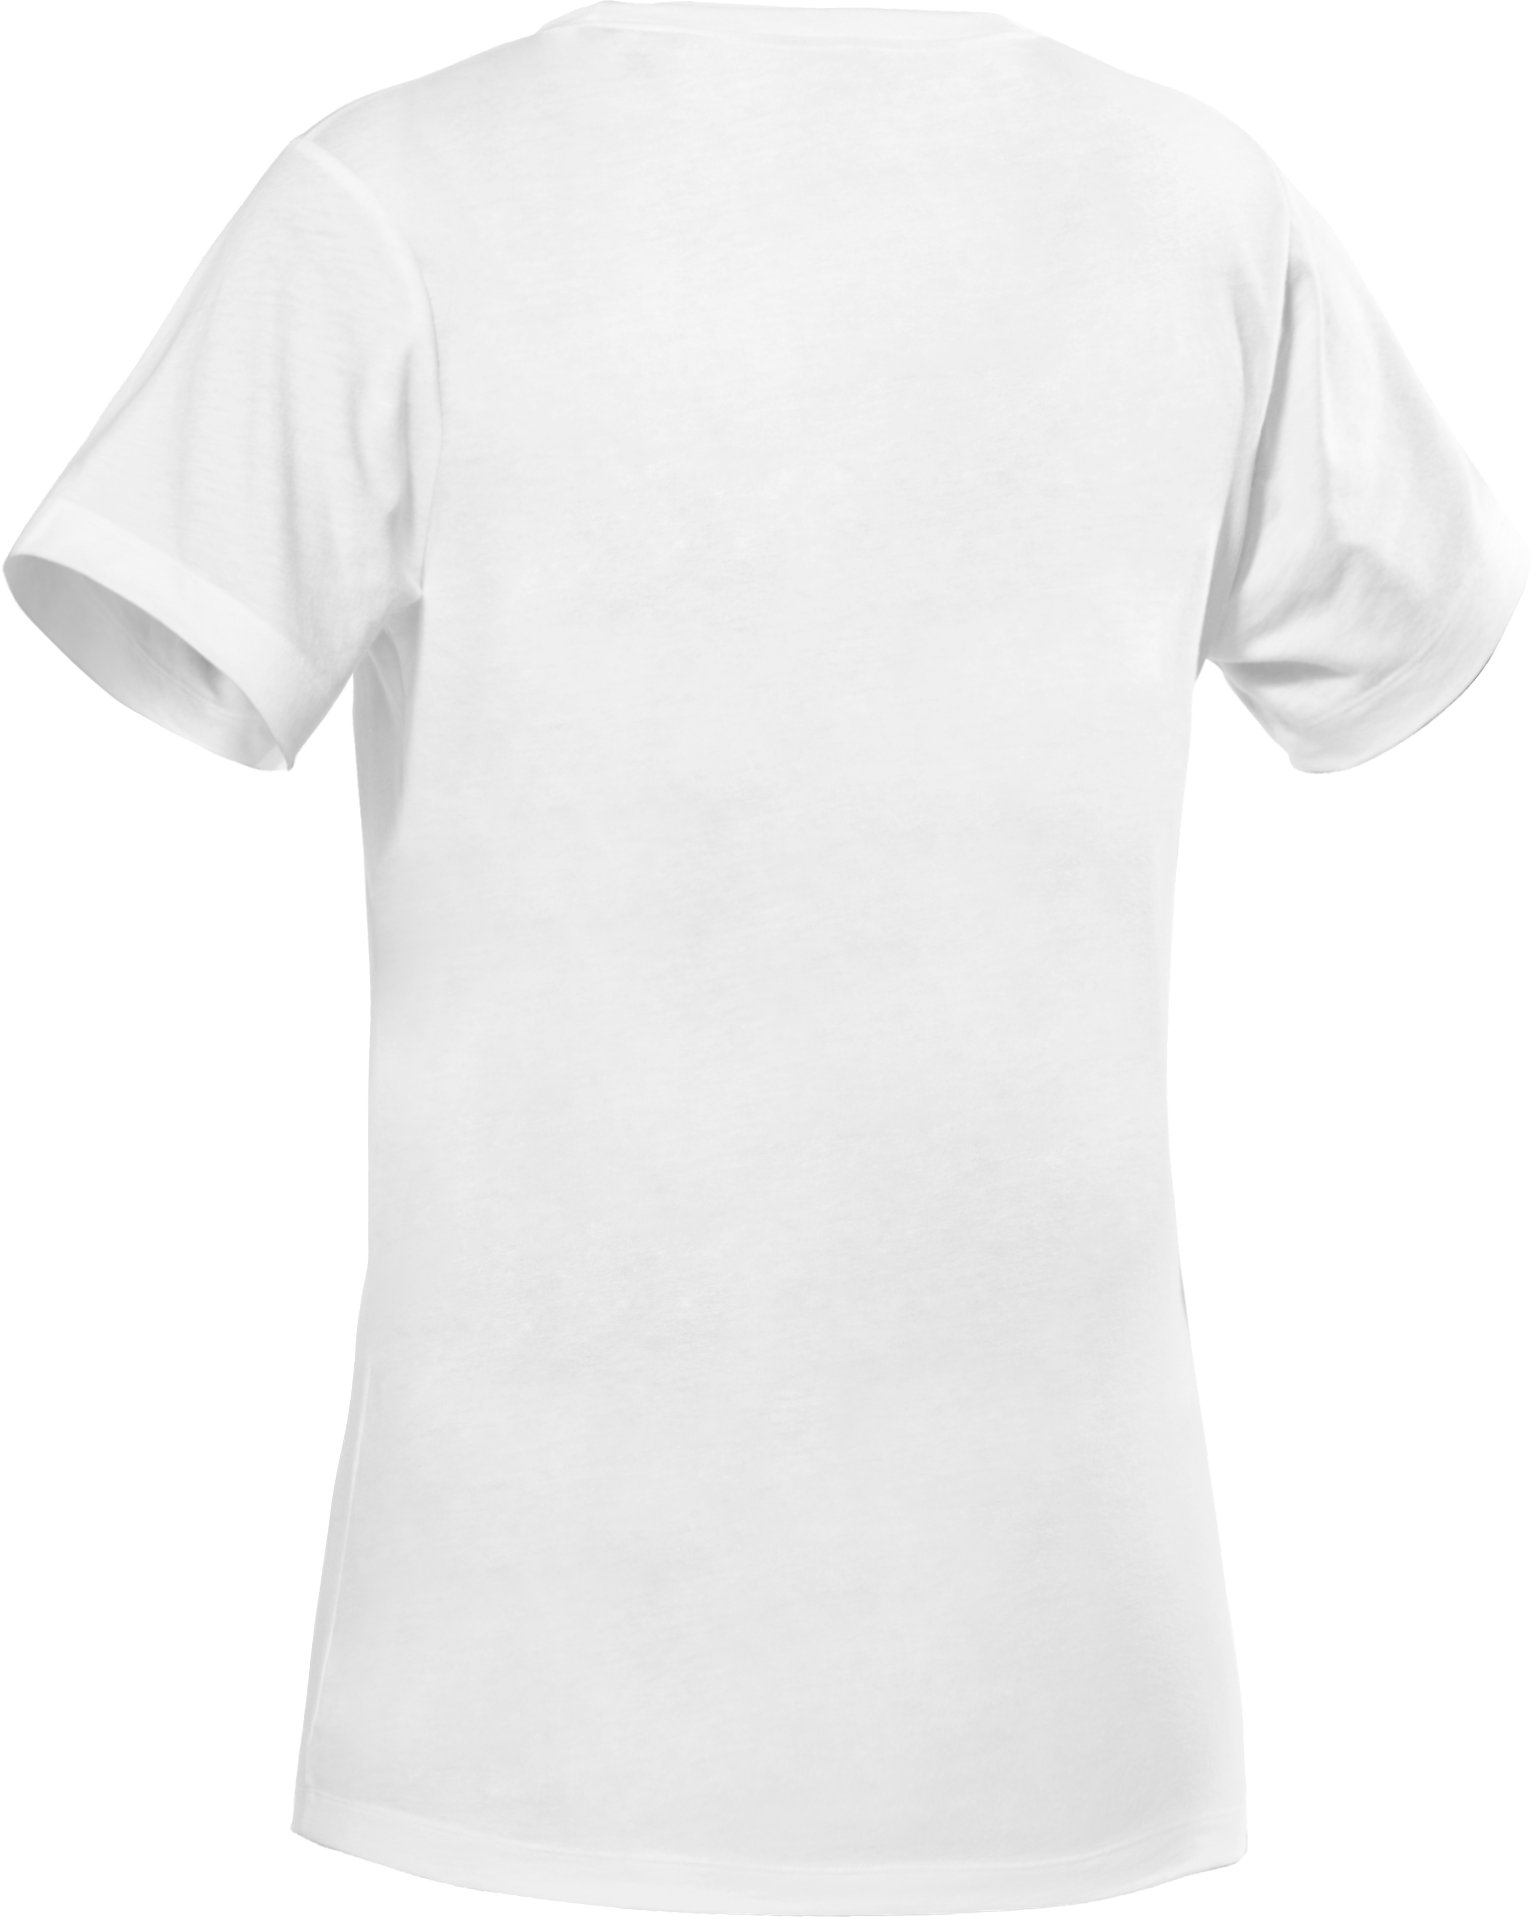 Women's Oversized UA Graphic T-Shirt, White